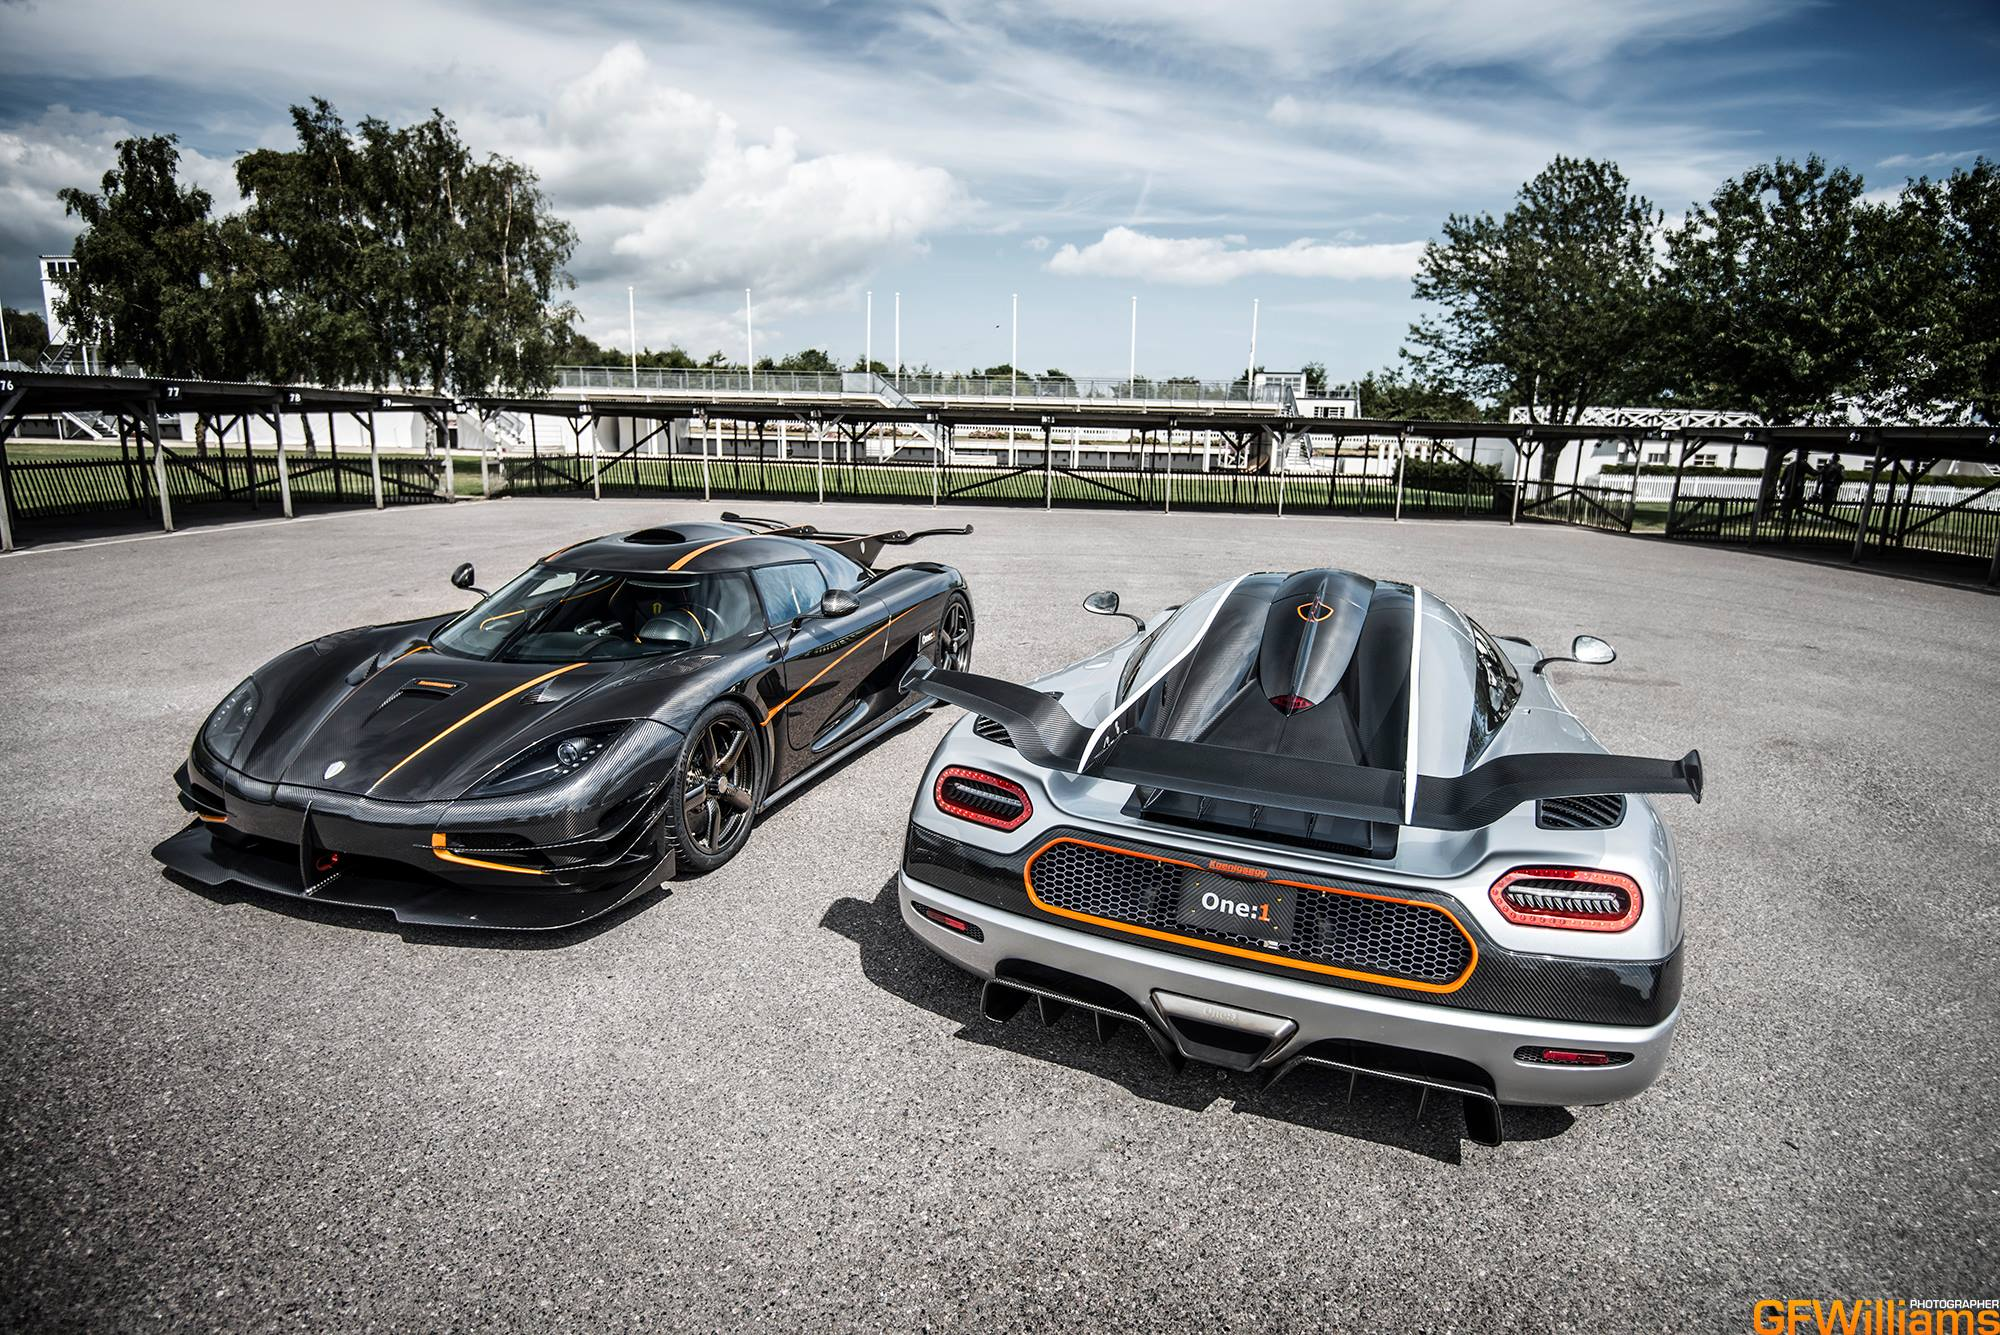 koenigsegg videos video 1 - photo #25